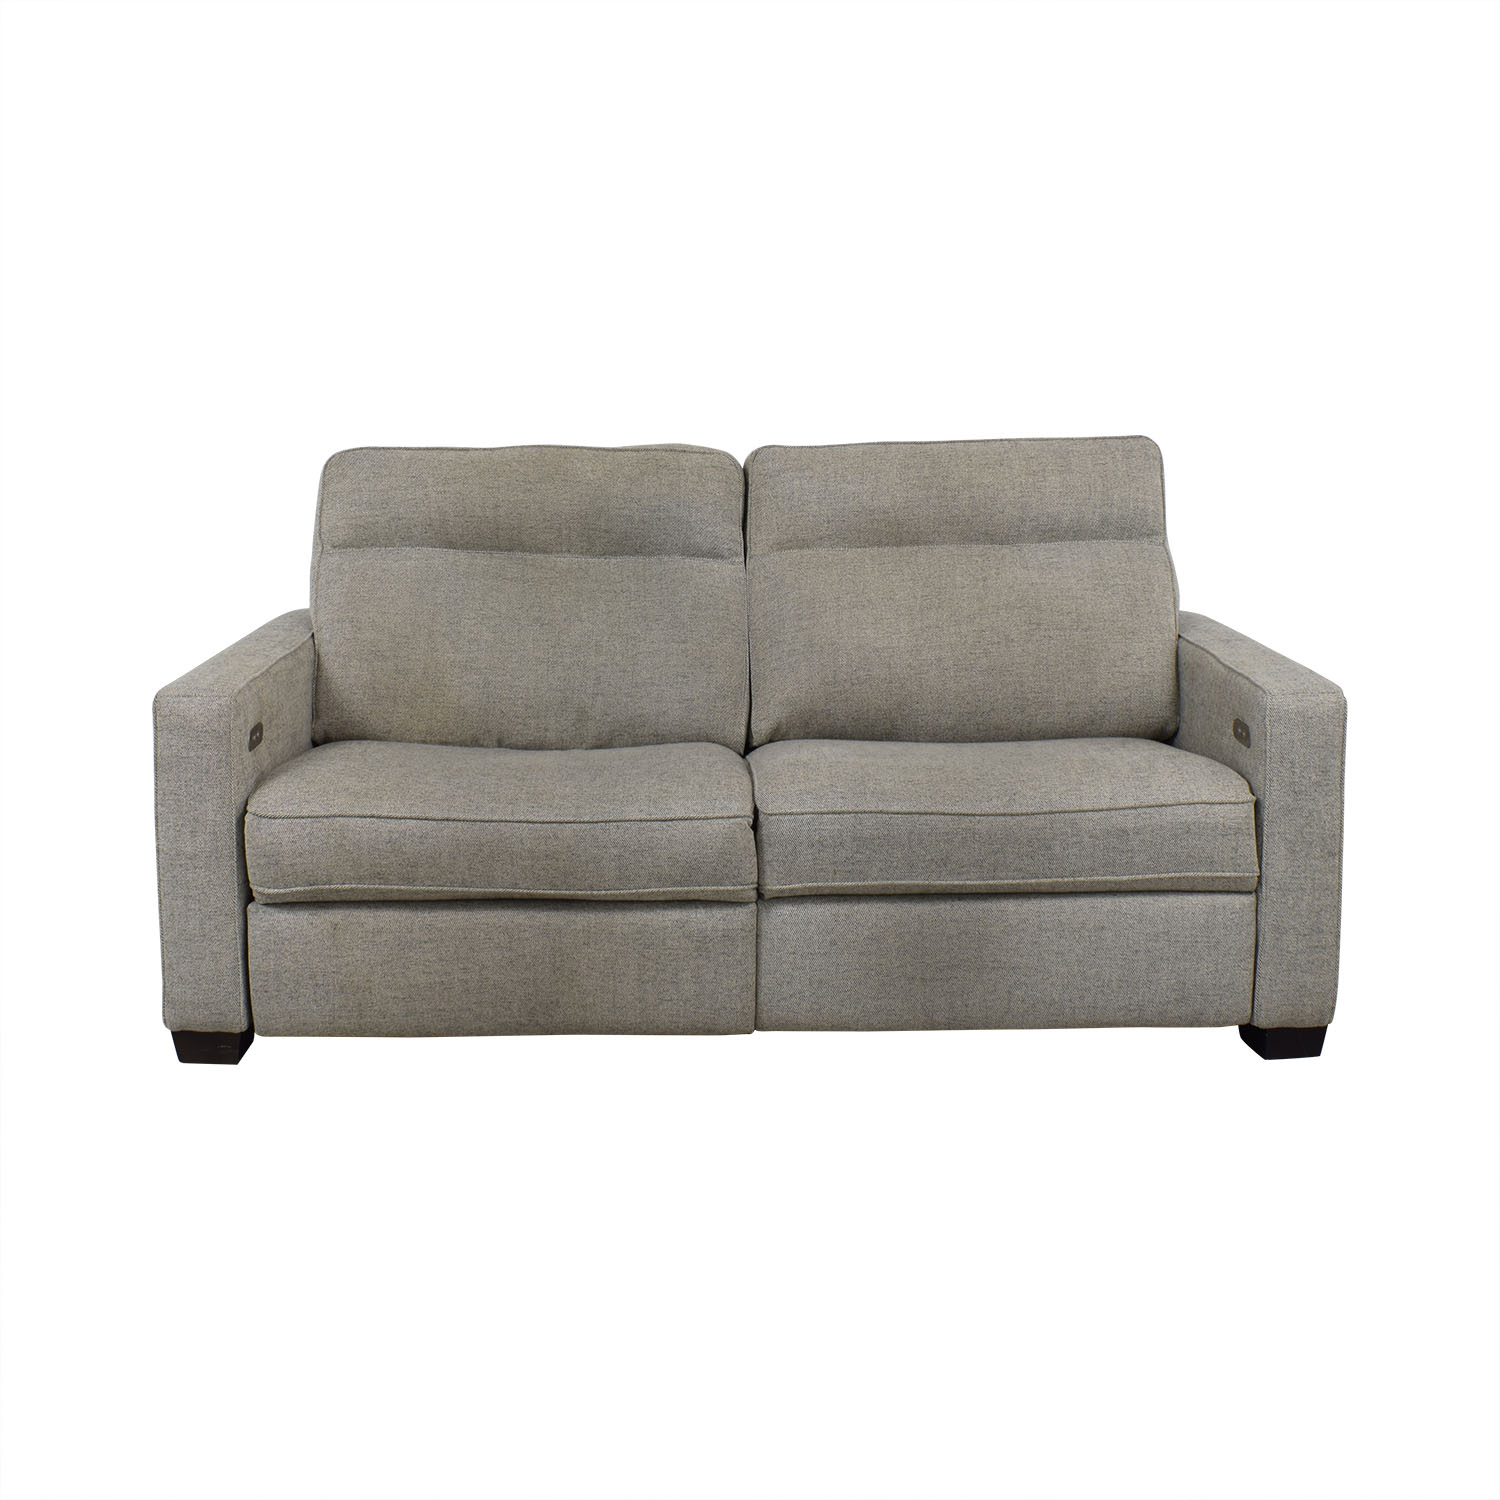 West Elm Henry Power Recliner Sofa / Classic Sofas